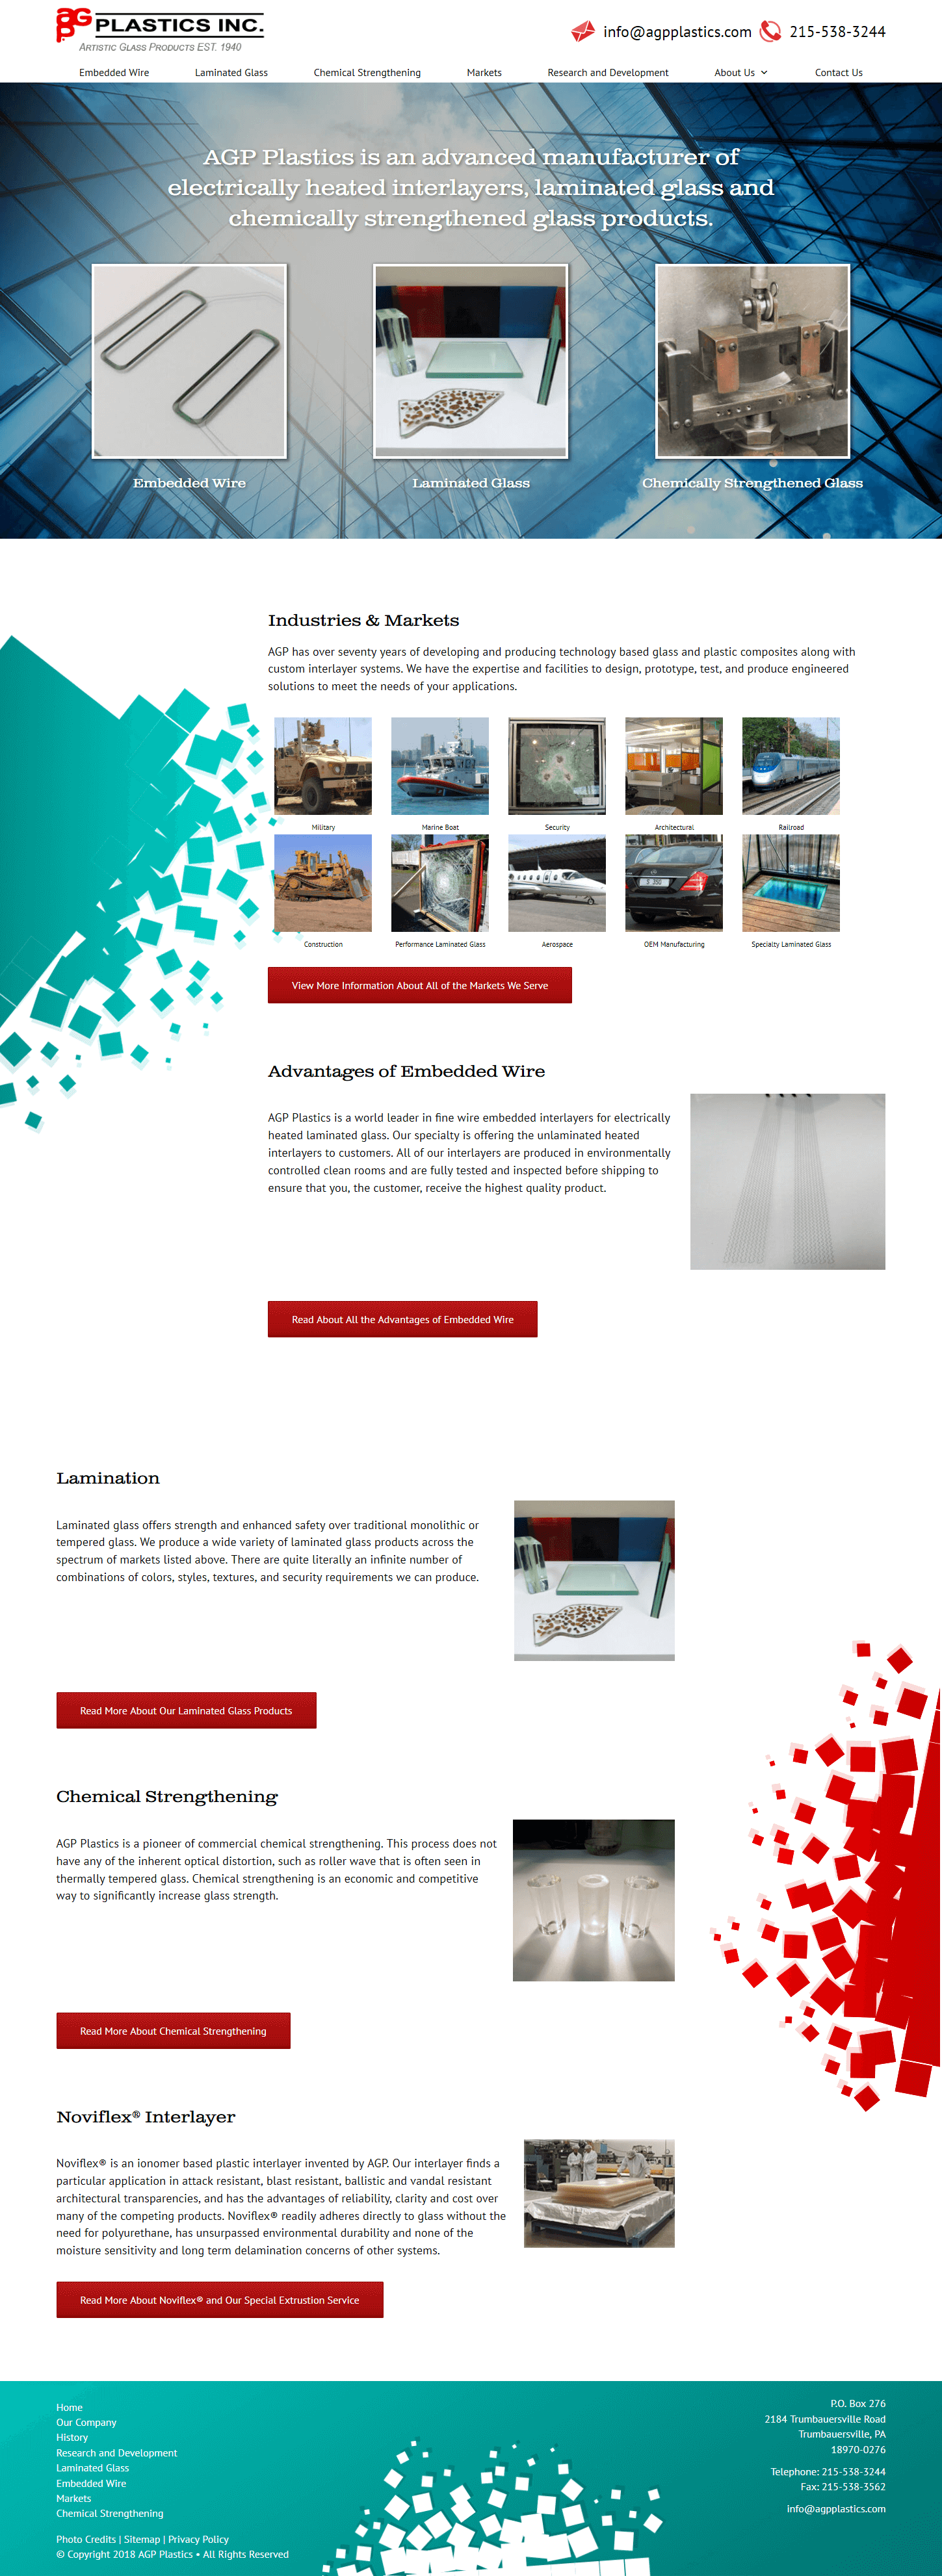 AGP Plastics - Website by B2B Design & Development